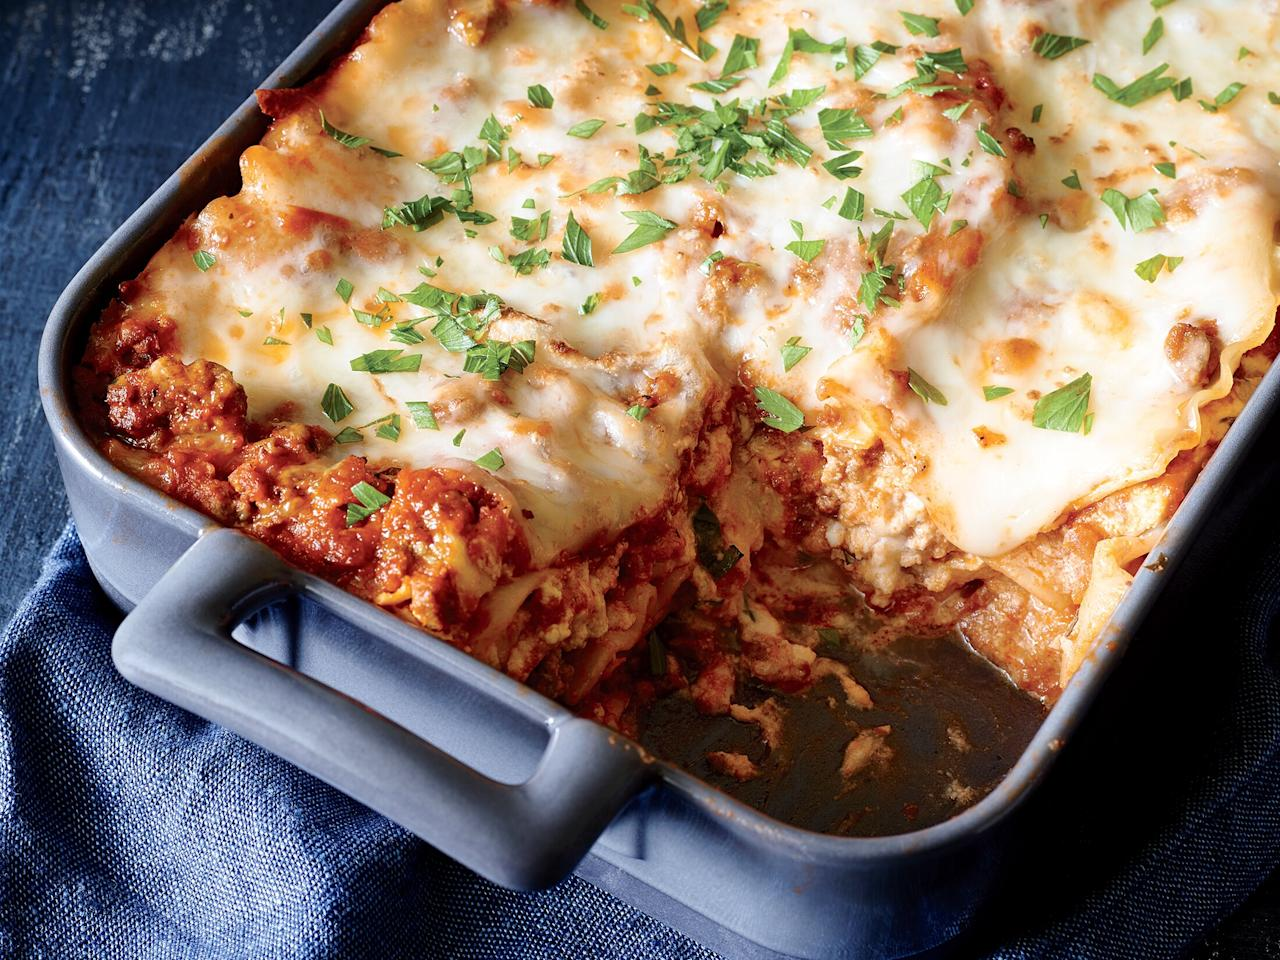 """<p>This simple lasagna is perfect for when you're short on time, but craving a comforting meal. Ready in just over an hour, it requires only 50 minutes of cooking in the oven.</p> <p>Extra-lean ground beef (which sometimes cooks up dry) works well here because it's combined with marinara to keep it moist. For a quick and easy variation, feel free to use 9 whole lasagna noodles instead of 6 broken noodles, using 3 noodles per layer. You also can sub fresh basil leaves for the parsley sprinkled on at the end. </p> <p><a href=""""https://www.myrecipes.com/recipe/classic-lasagna-meat-sauce"""">Classic Lasagna with Meat Sauce Recipe</a></p>"""